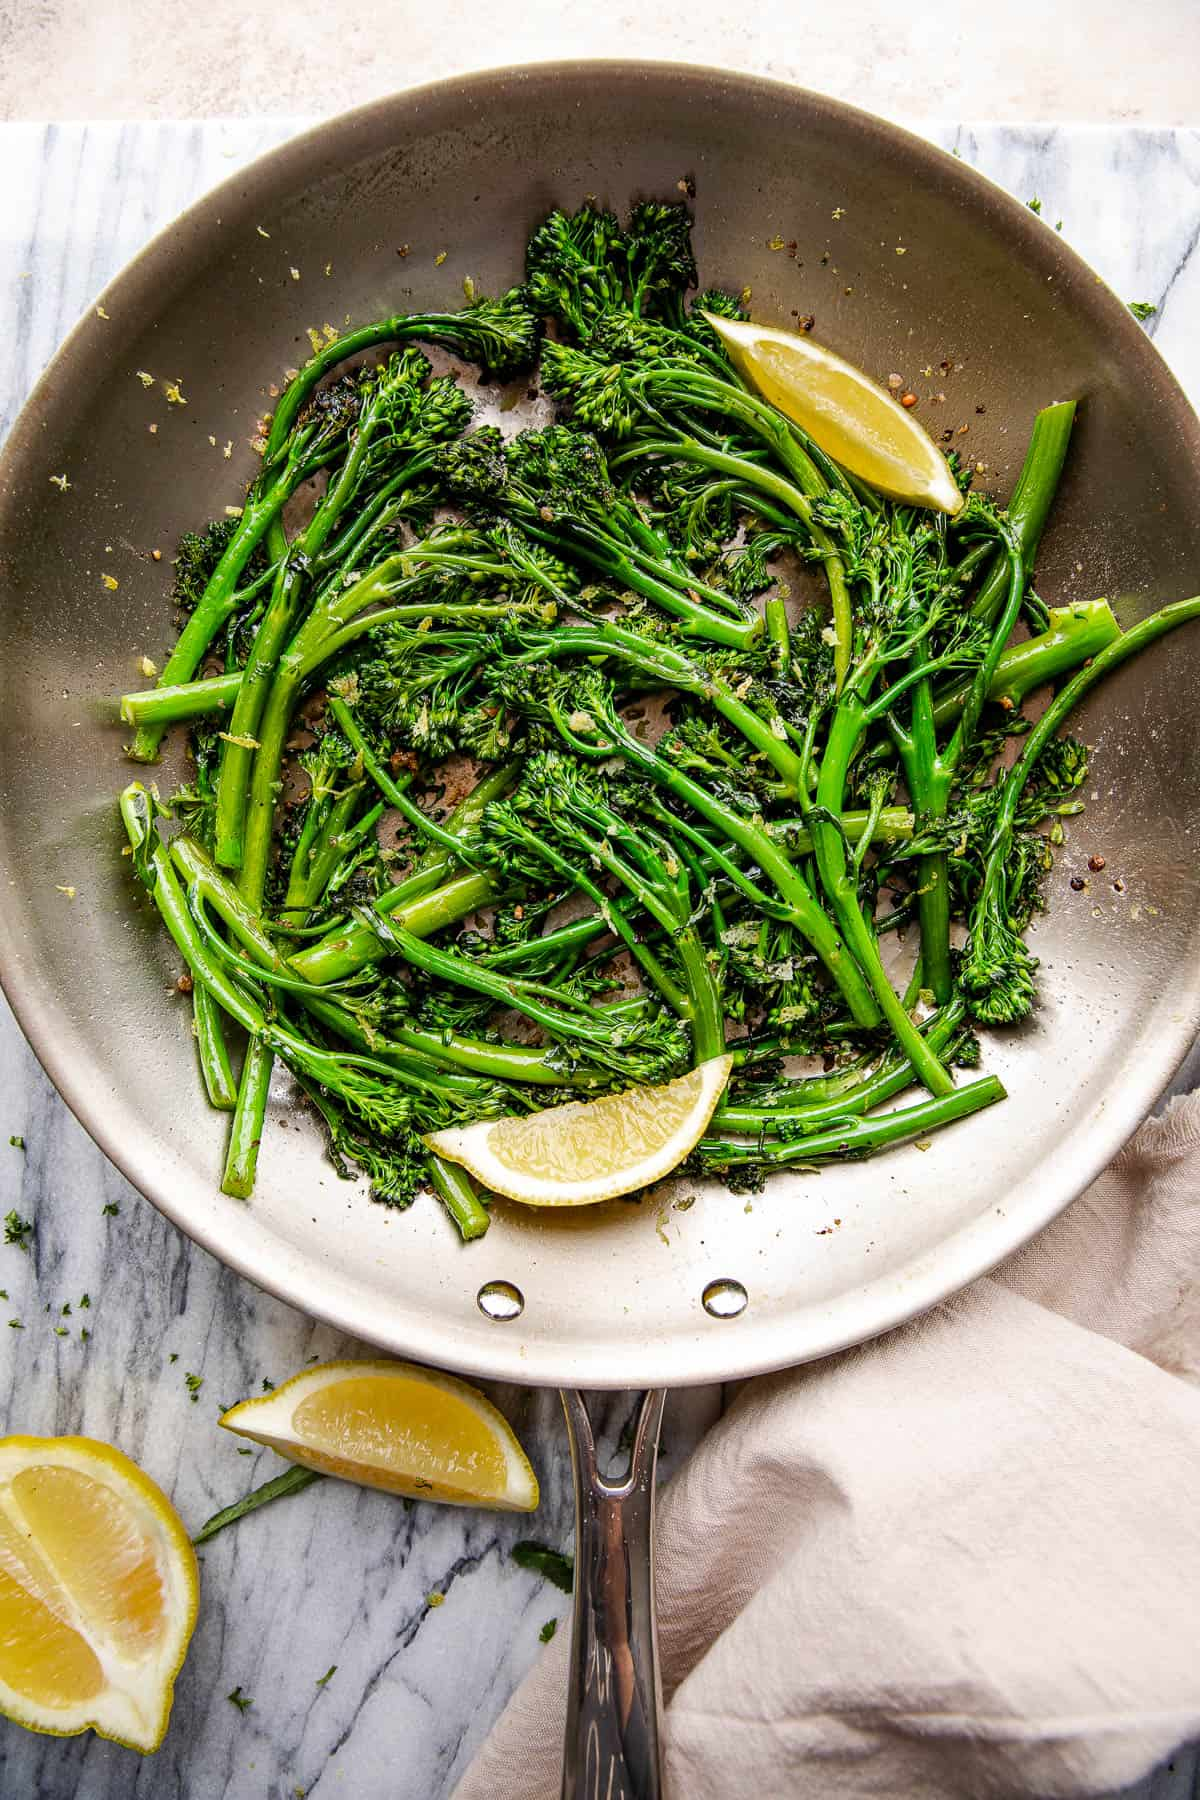 overhead shot of sauteed broccolini and lemon wedges pictured in a stainless steel skillet